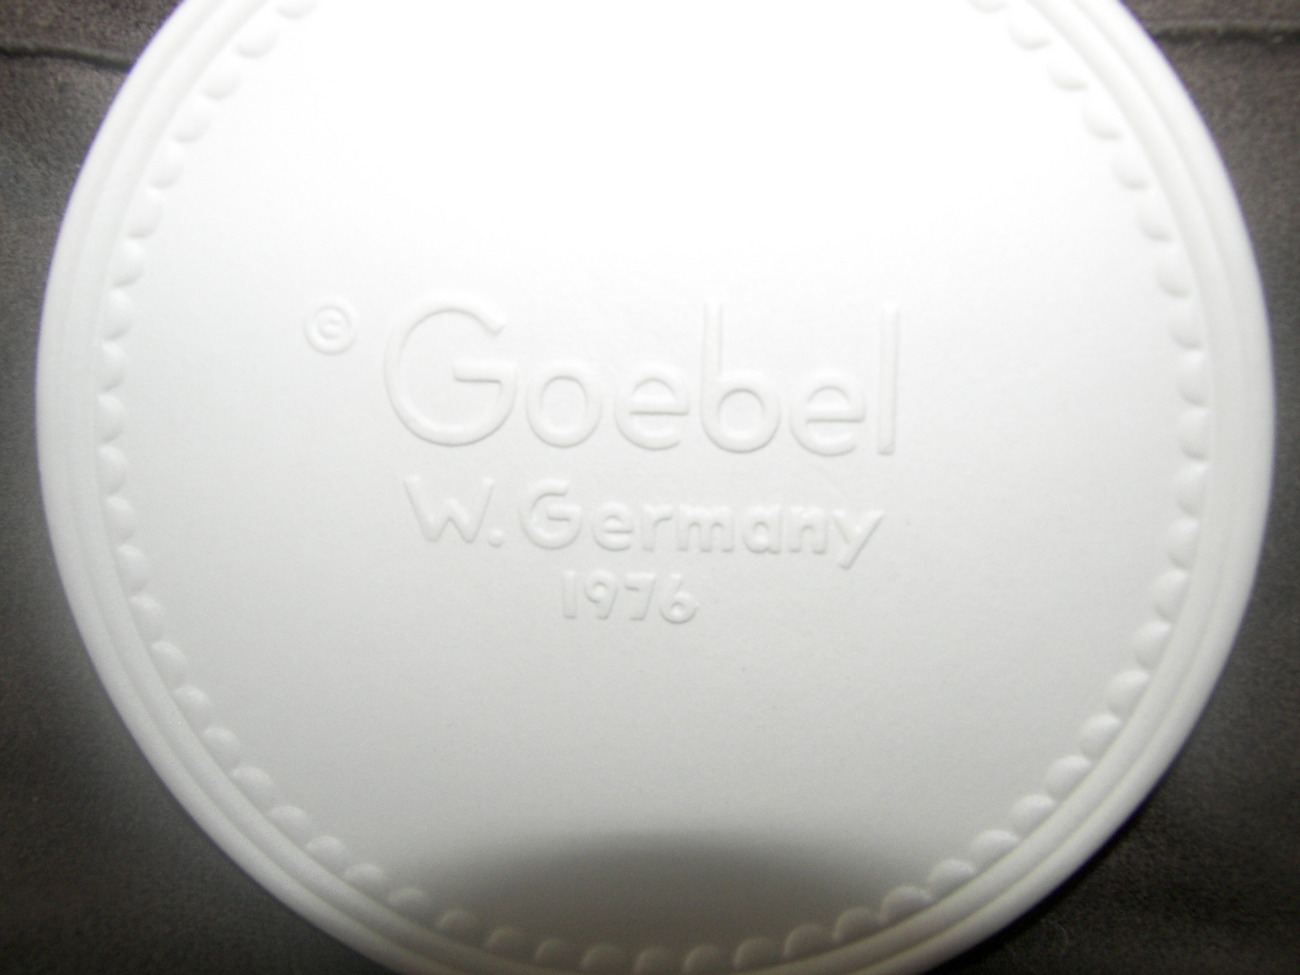 Vintage 1976 Goebel Collector's Club Member's Plate